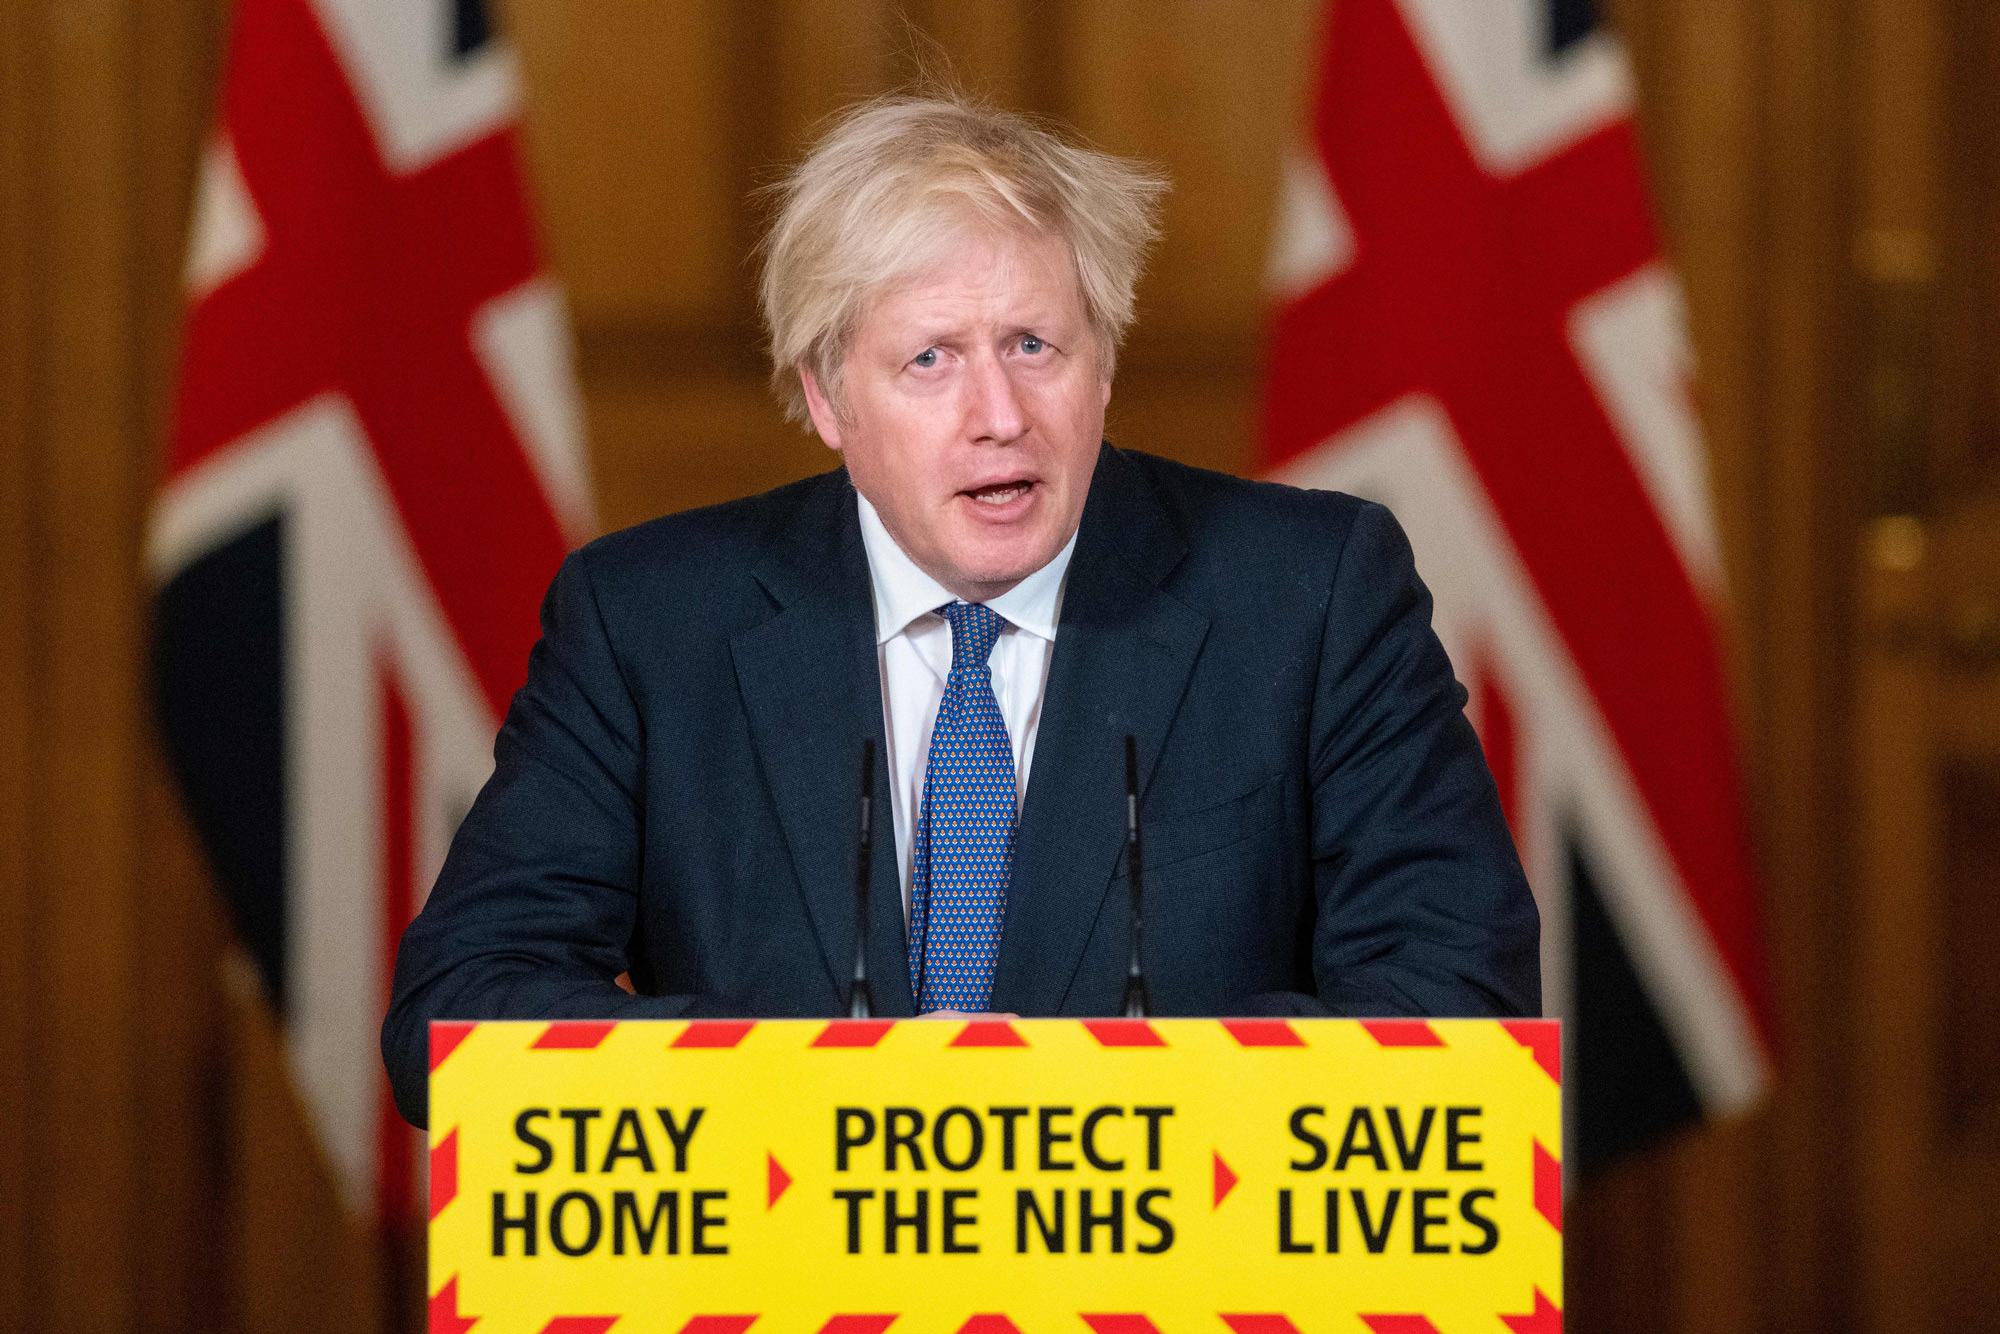 Britain's Prime Minister Boris Johnson speaks during a virtual press conference at 10 Downing Street in London on January 15.